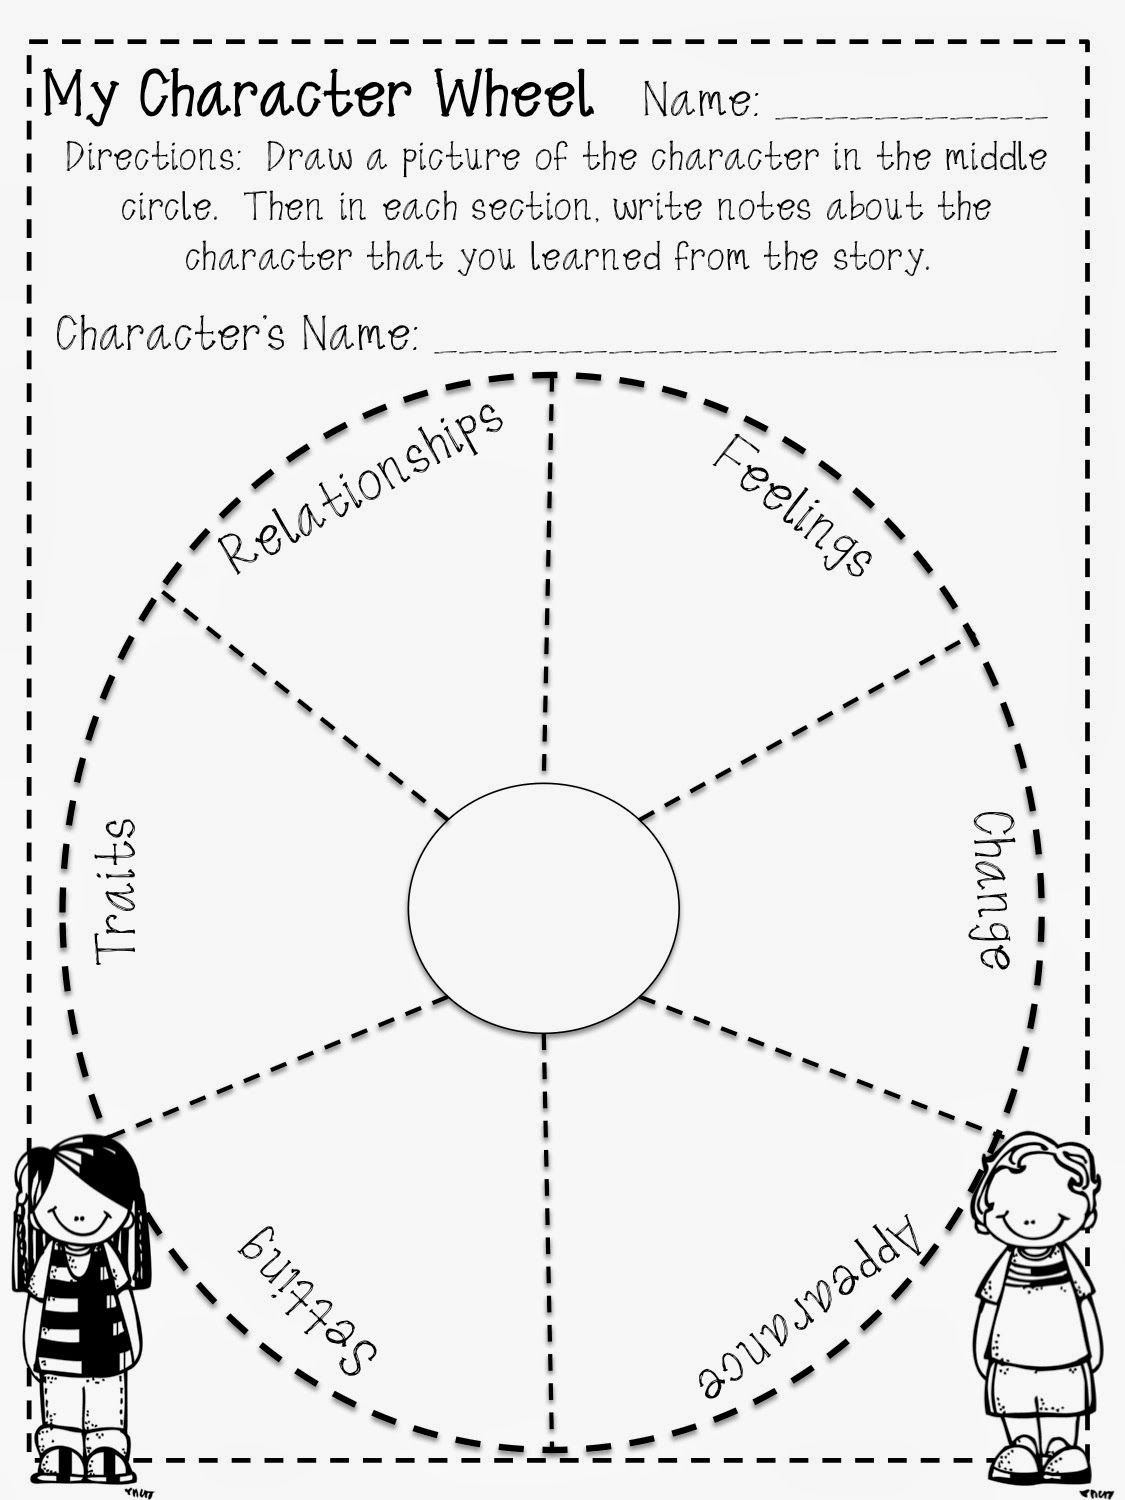 Character Traits Worksheet 4th Grade Reading Character Wheel Freebie